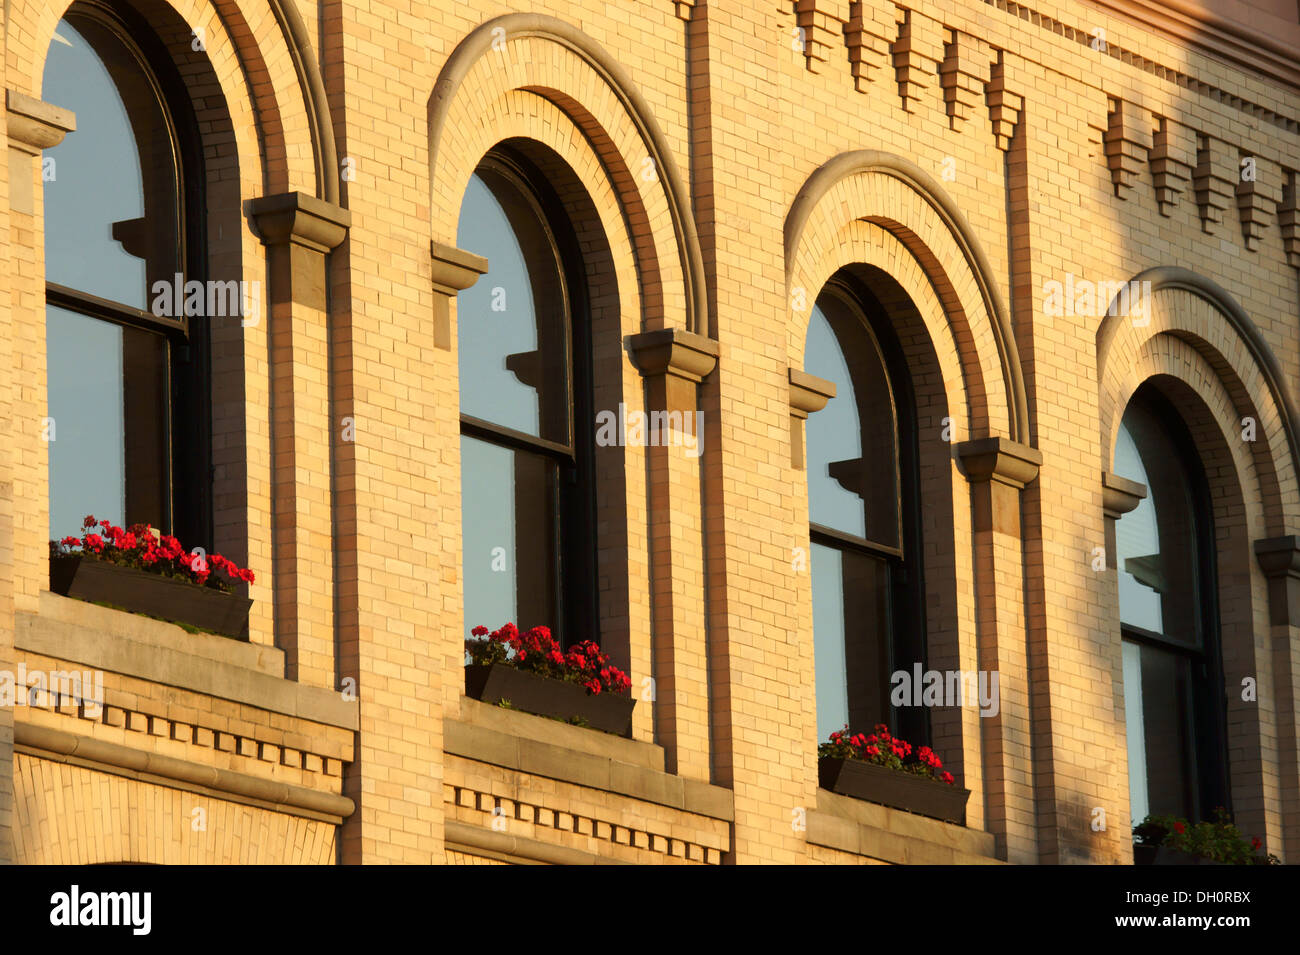 geraniums-on-a-windowsill-of-an-old-bank